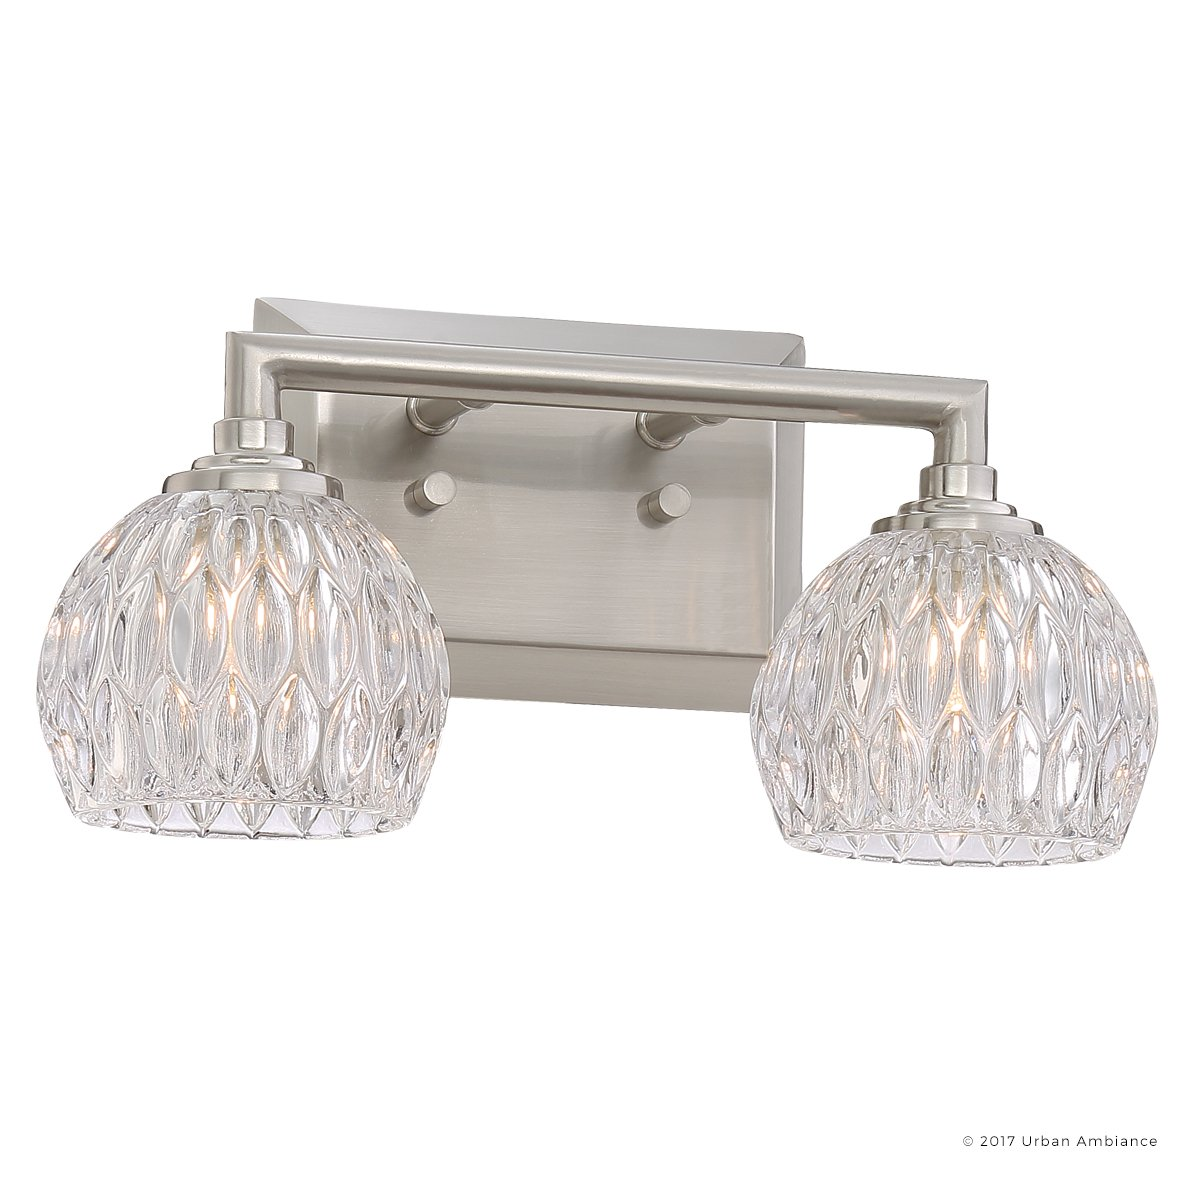 Luxury Crystal Bathroom Vanity Light, Medium Size: 6.25''H x 12.5''W, with Classic Style Elements, Brushed Nickel Finish and Marquis Cut Glass Shades, G9 LED Technology, UQL2620 by Urban Ambiance